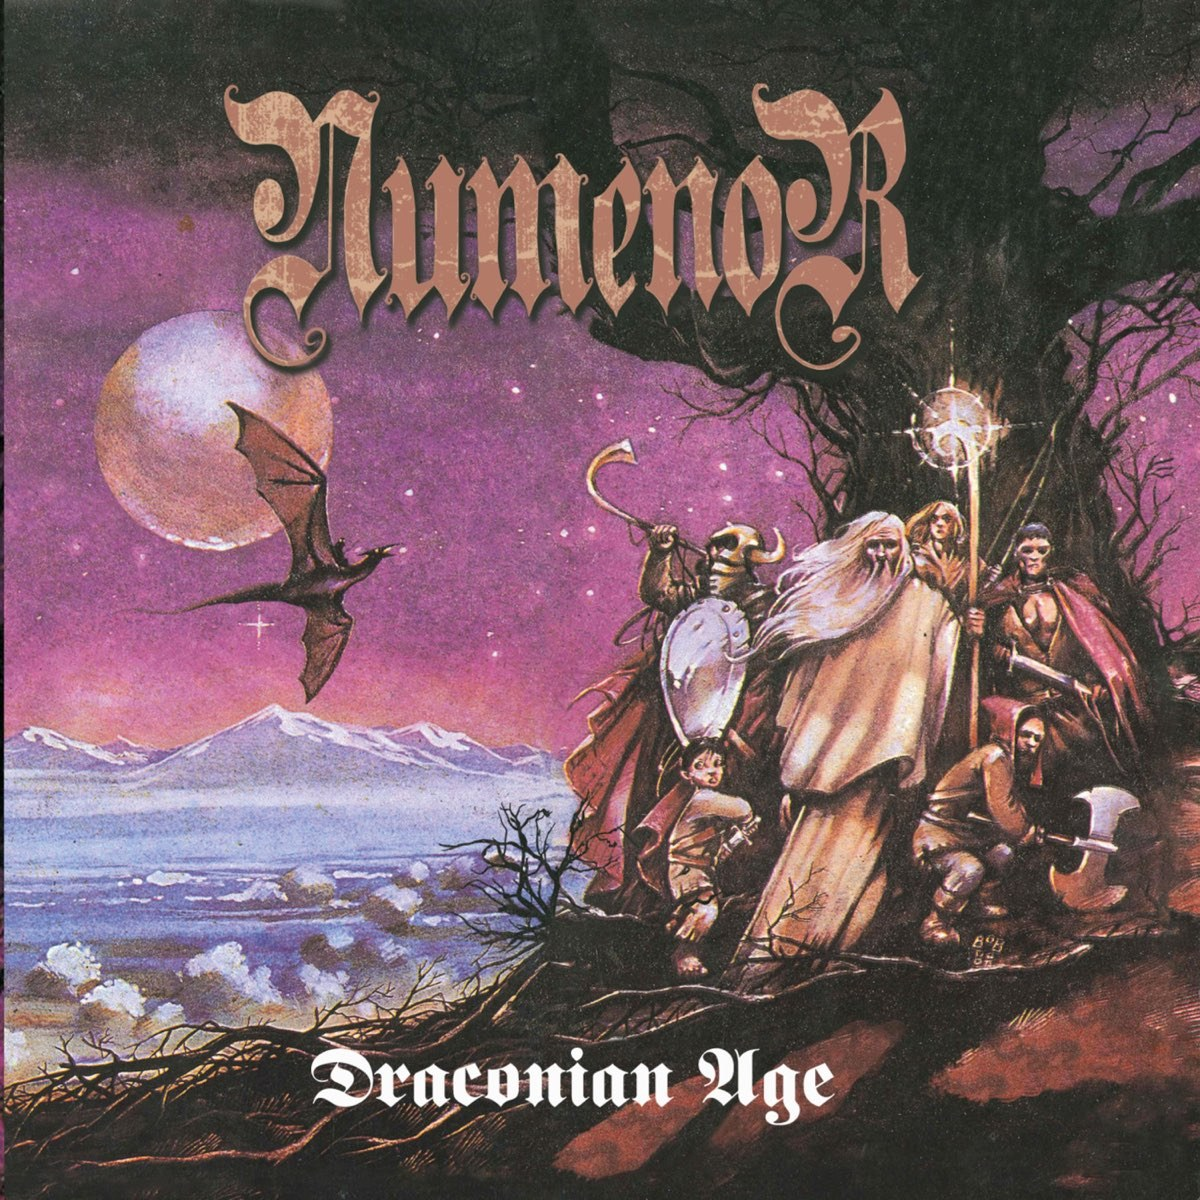 Review for Númenor - Draconian Age